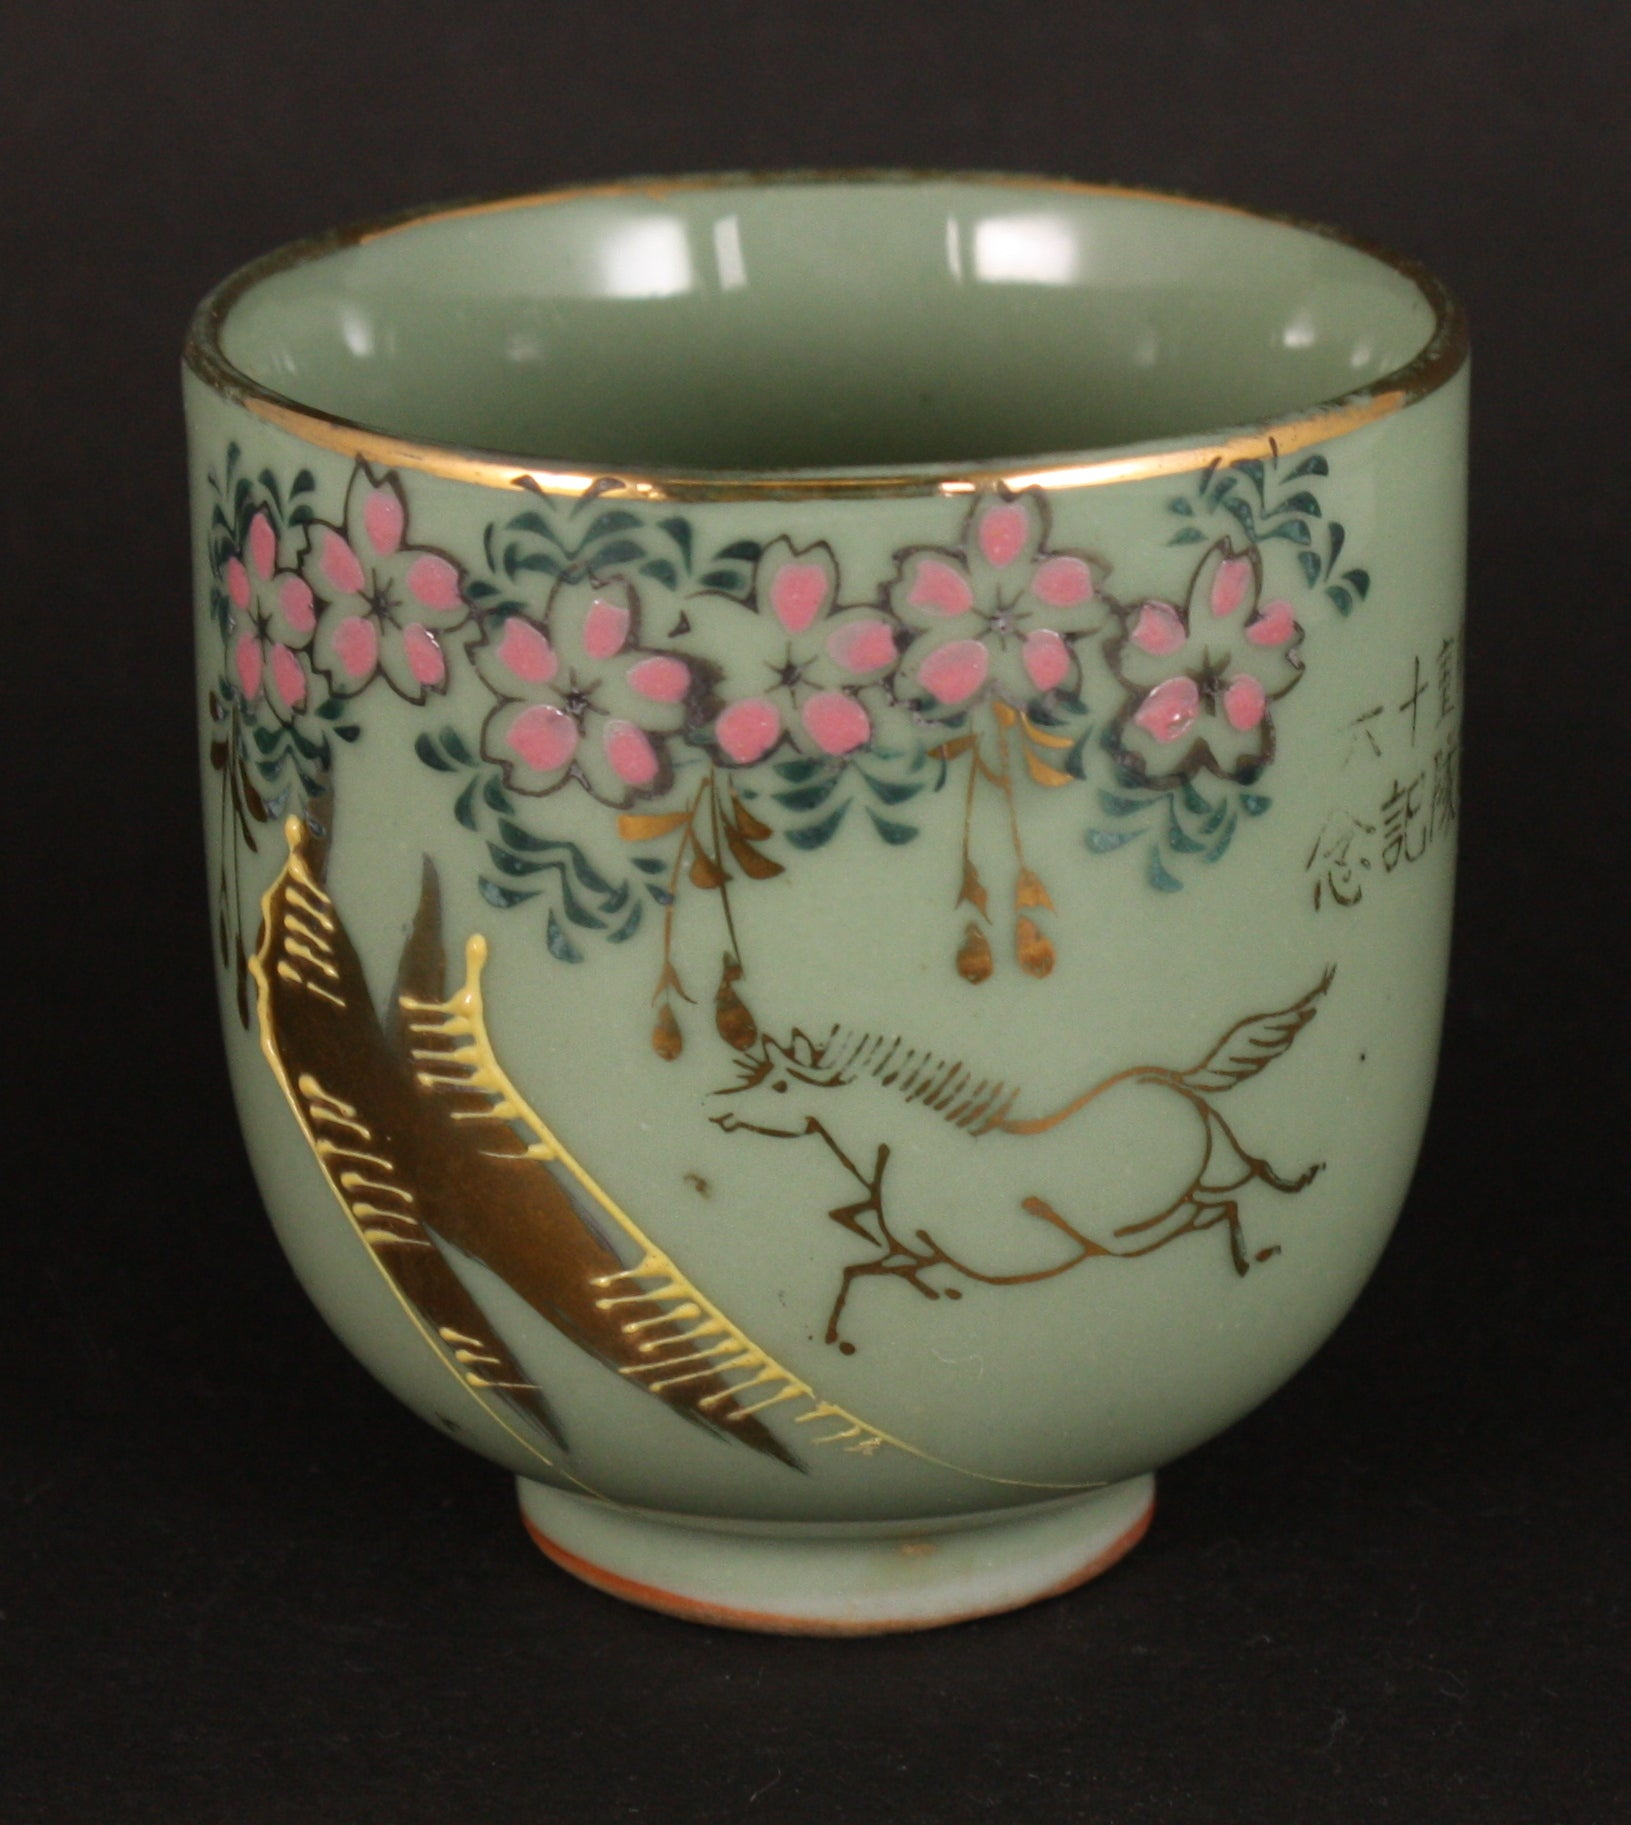 Antique Japanese Military Horse Blossom Tree Transport Army Tea Cup